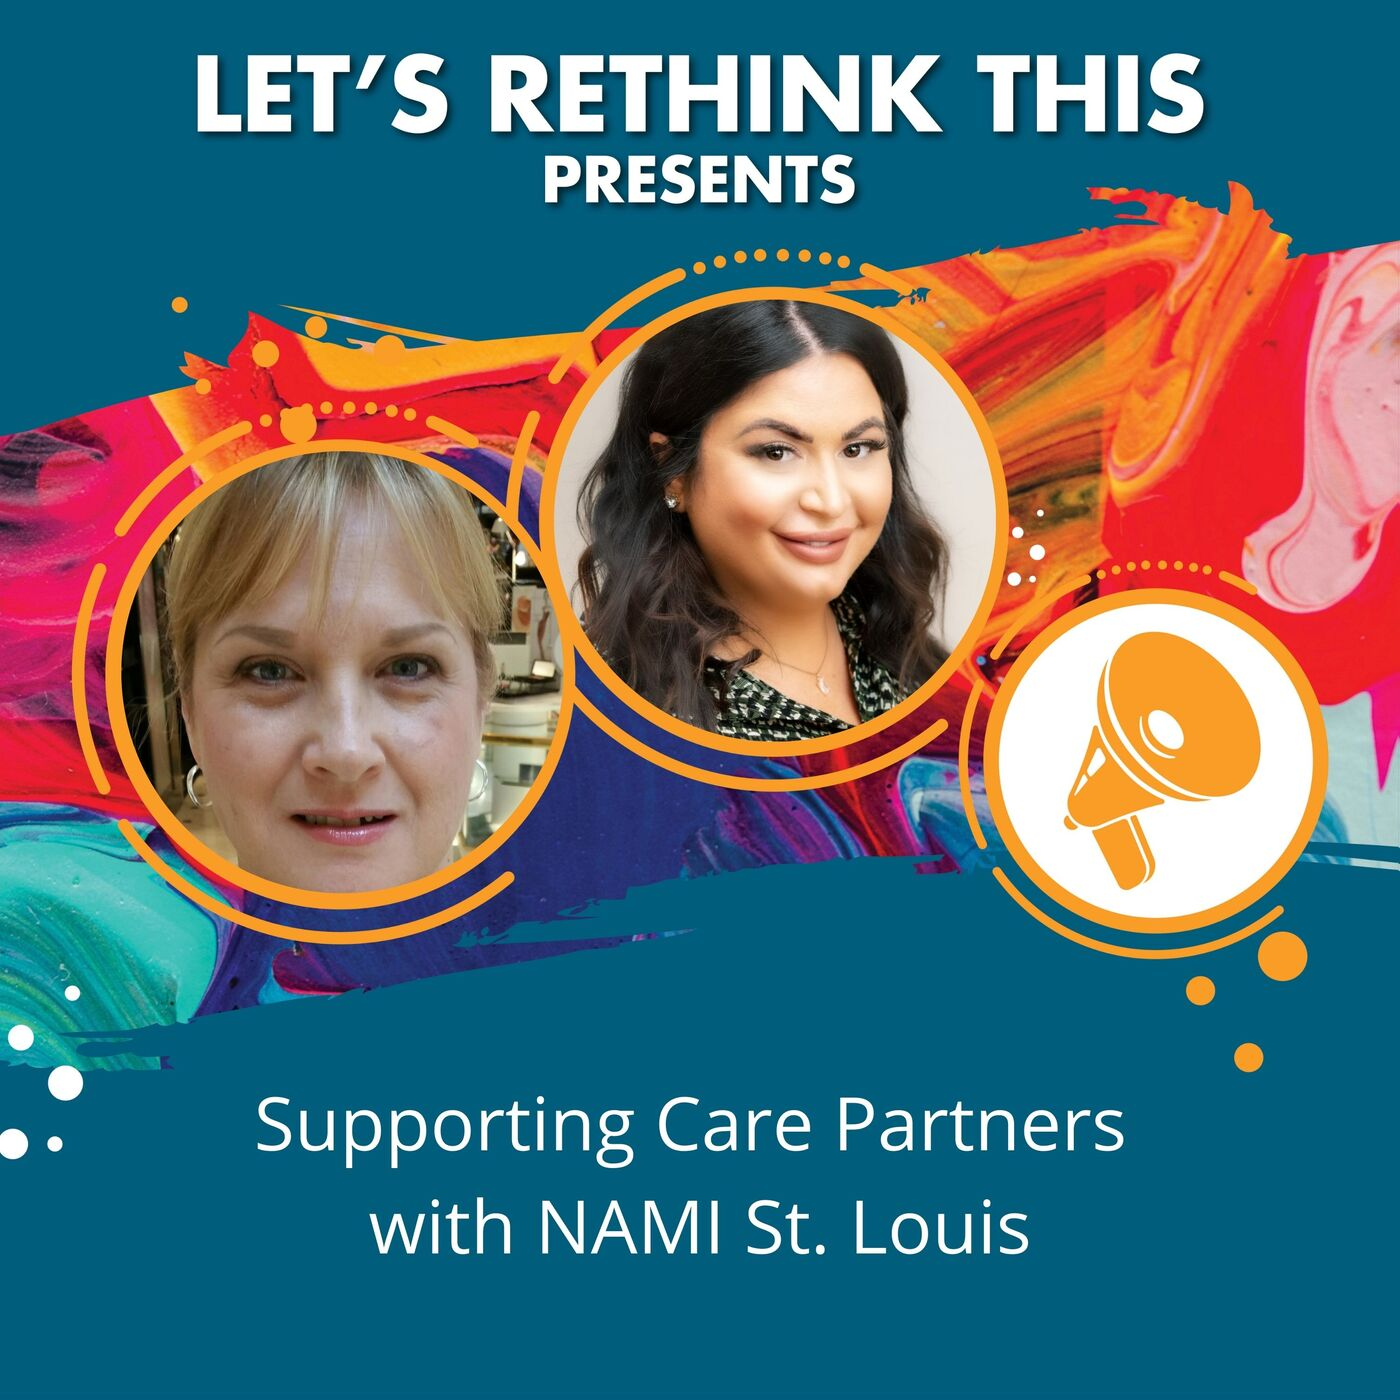 Supporting Care Partners with NAMI